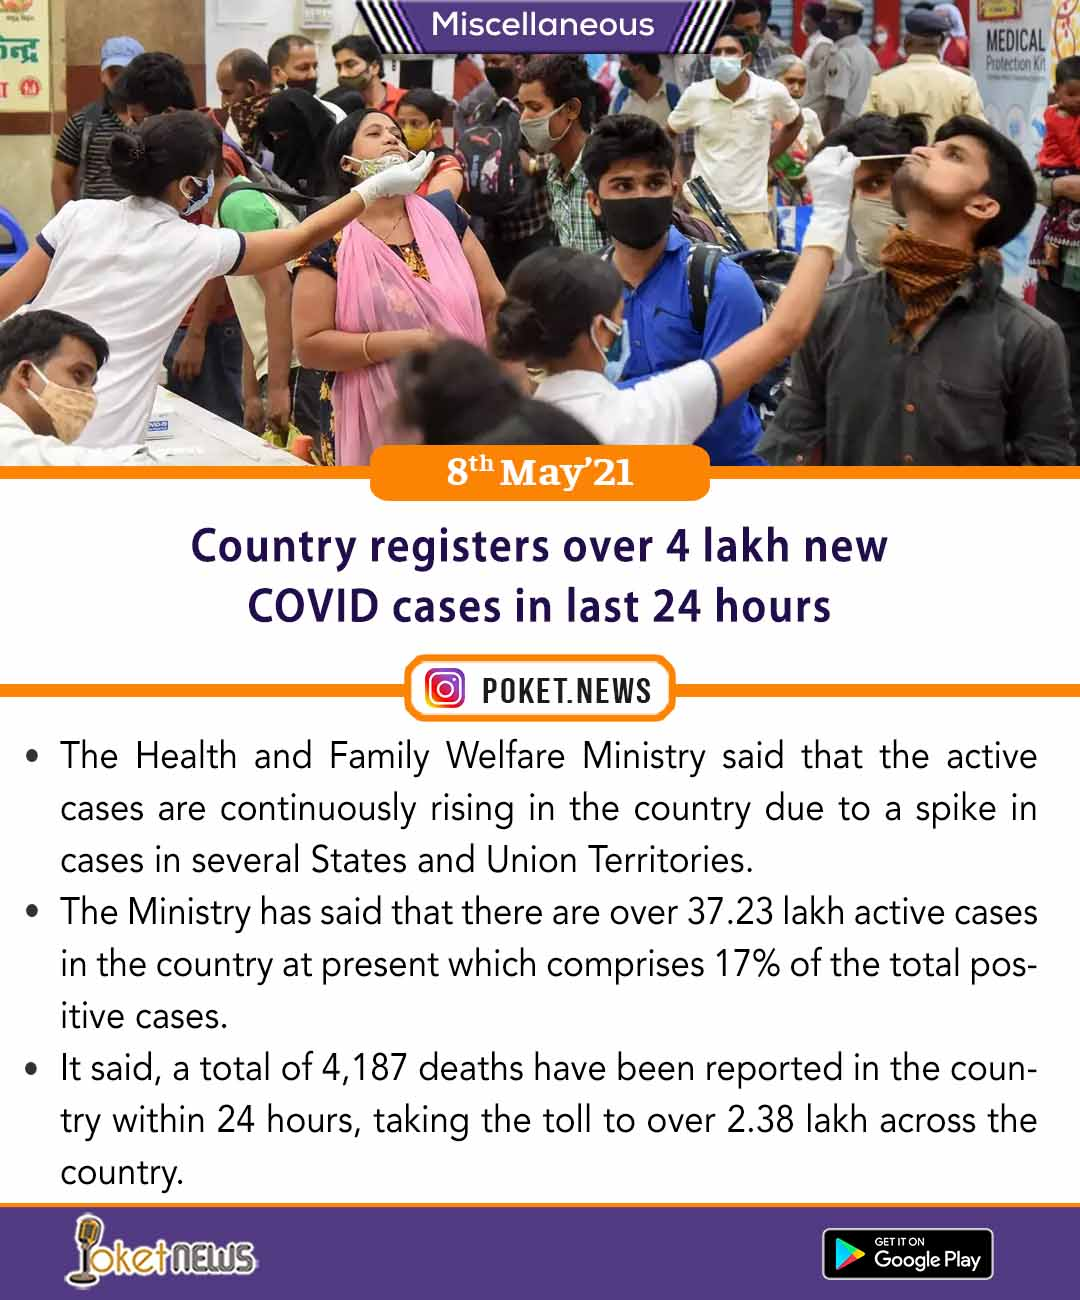 Country registers over 4 lakh new COVID cases in last 24 hours